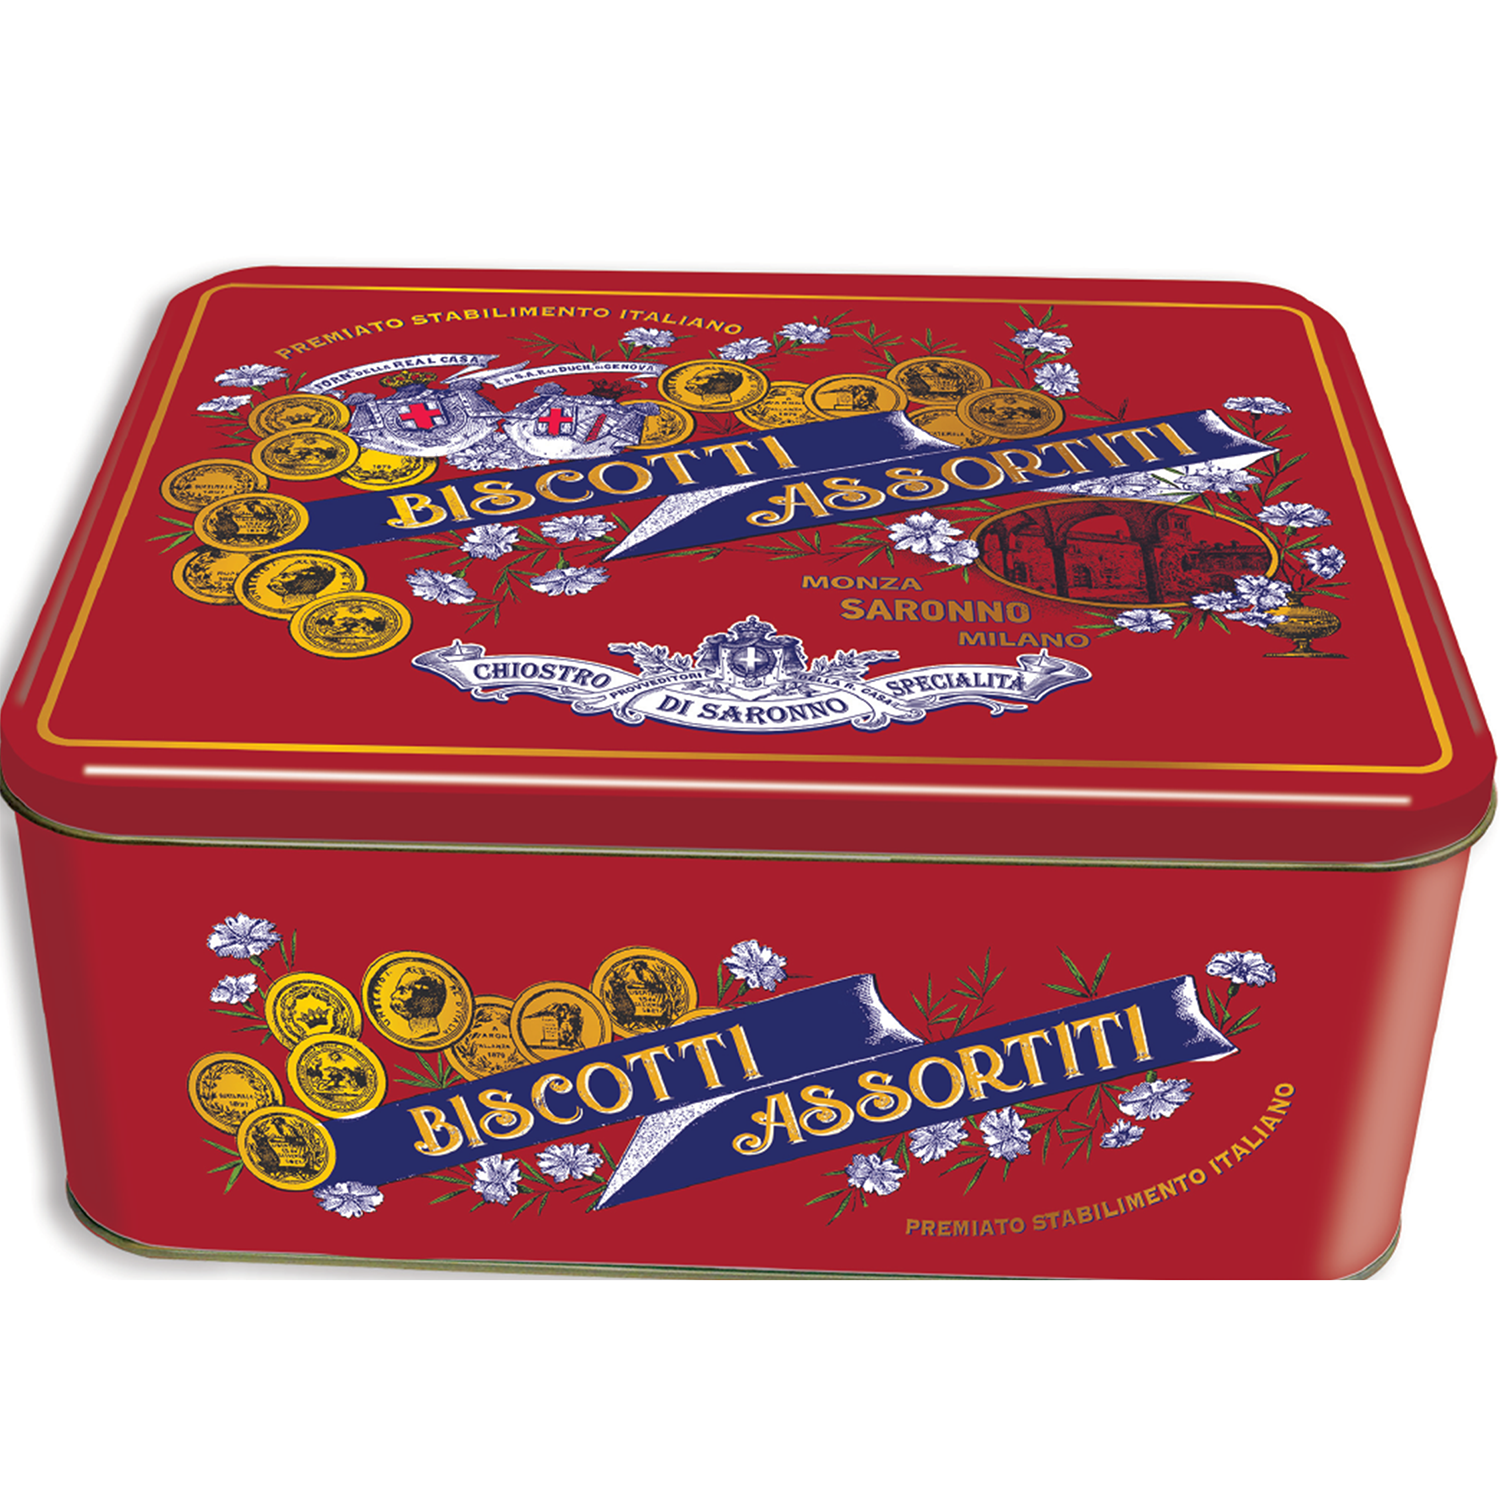 Italian Pastry Bicuits in Metal Tin biscuits tasty snack/ dessert/Confectionary/ Baked cake Bakery, Italy, Brand-Chef,Paolo Lazzaroni&Figli Spa